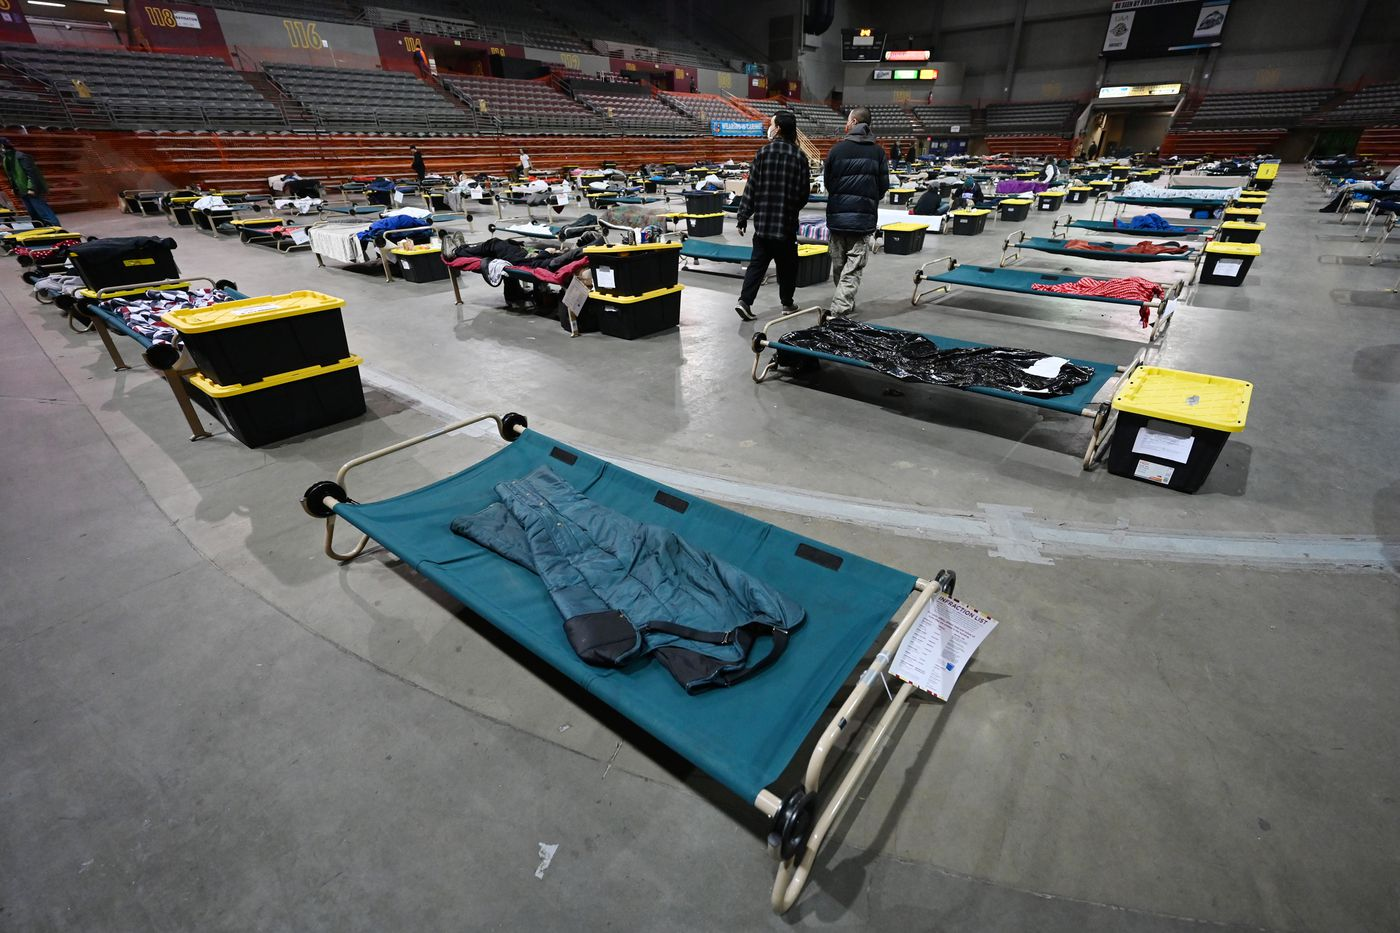 Socially distanced cots on the floor of the Mass Emergency Shelter operated by Beans's Cafe in Sullivan Arena on a rainy Wednesday, Feb. 24, 2021. (Bill Roth / ADN)